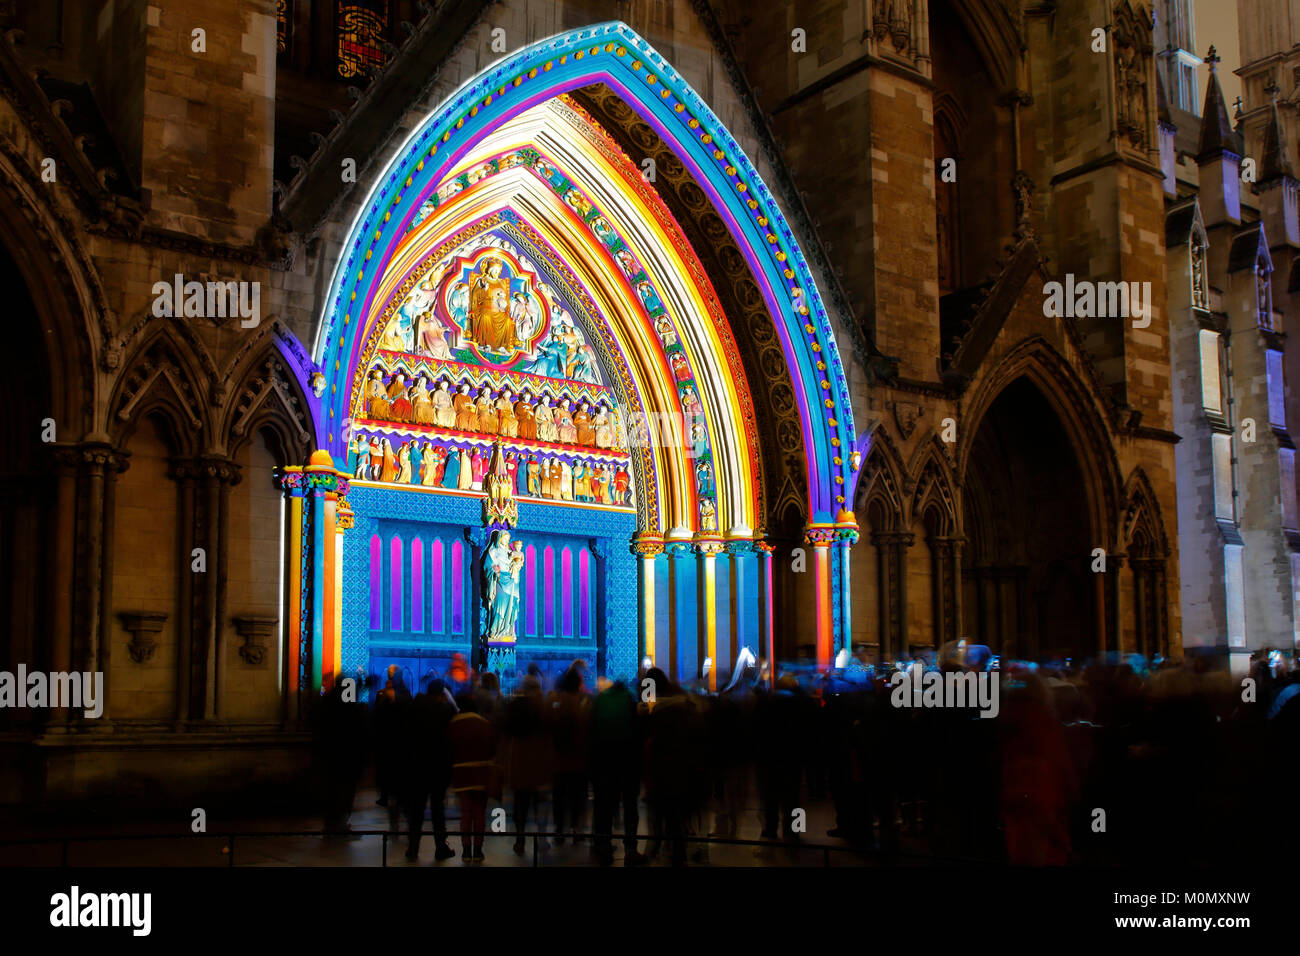 London Lumiere 2018 a festival of illuminated art installations shown here on Westminster Abbey are colourful projected - Stock Image